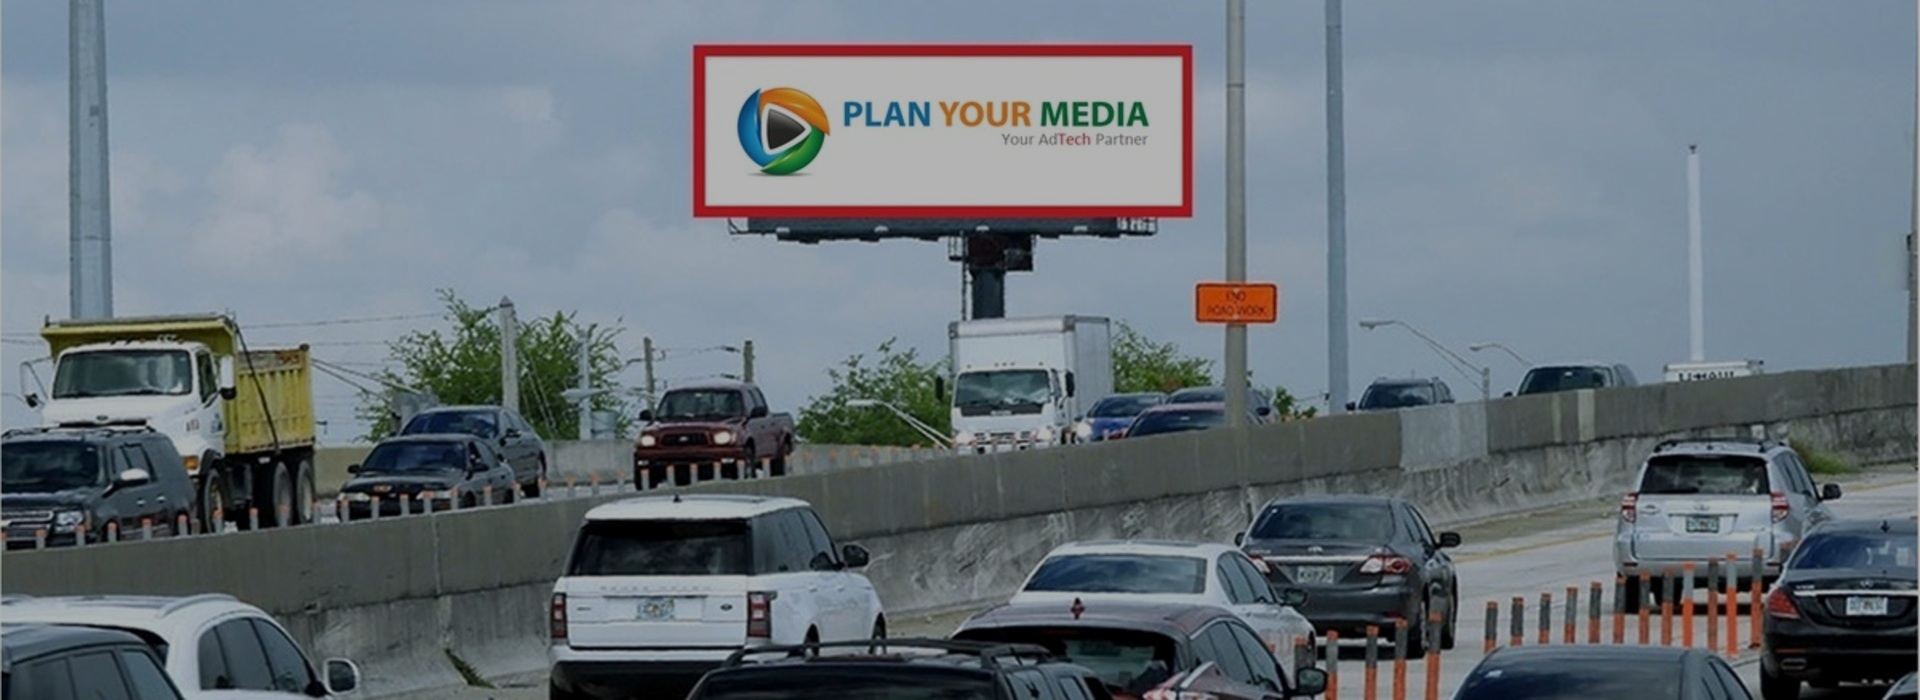 Plan Your Media